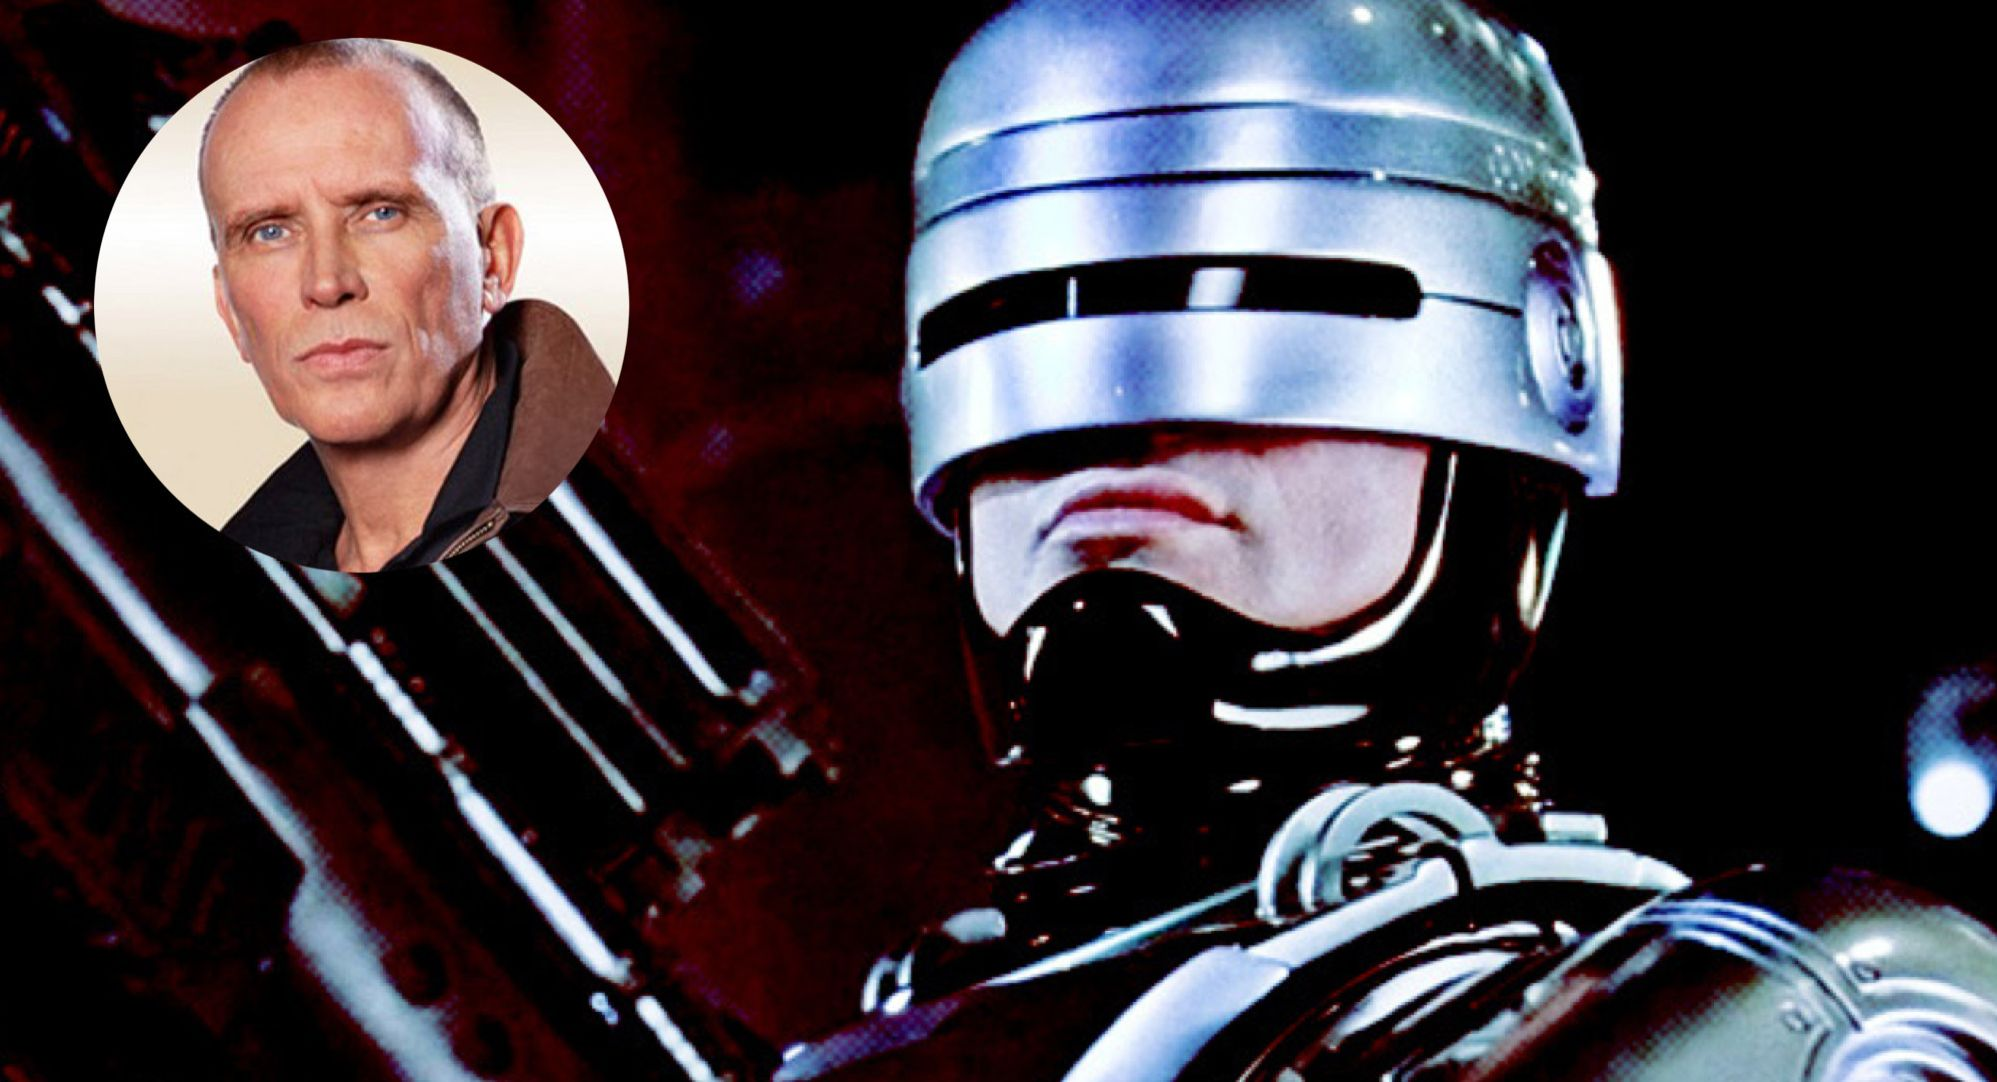 Neill Blomkamp suggests Peter Weller may return for MGMs